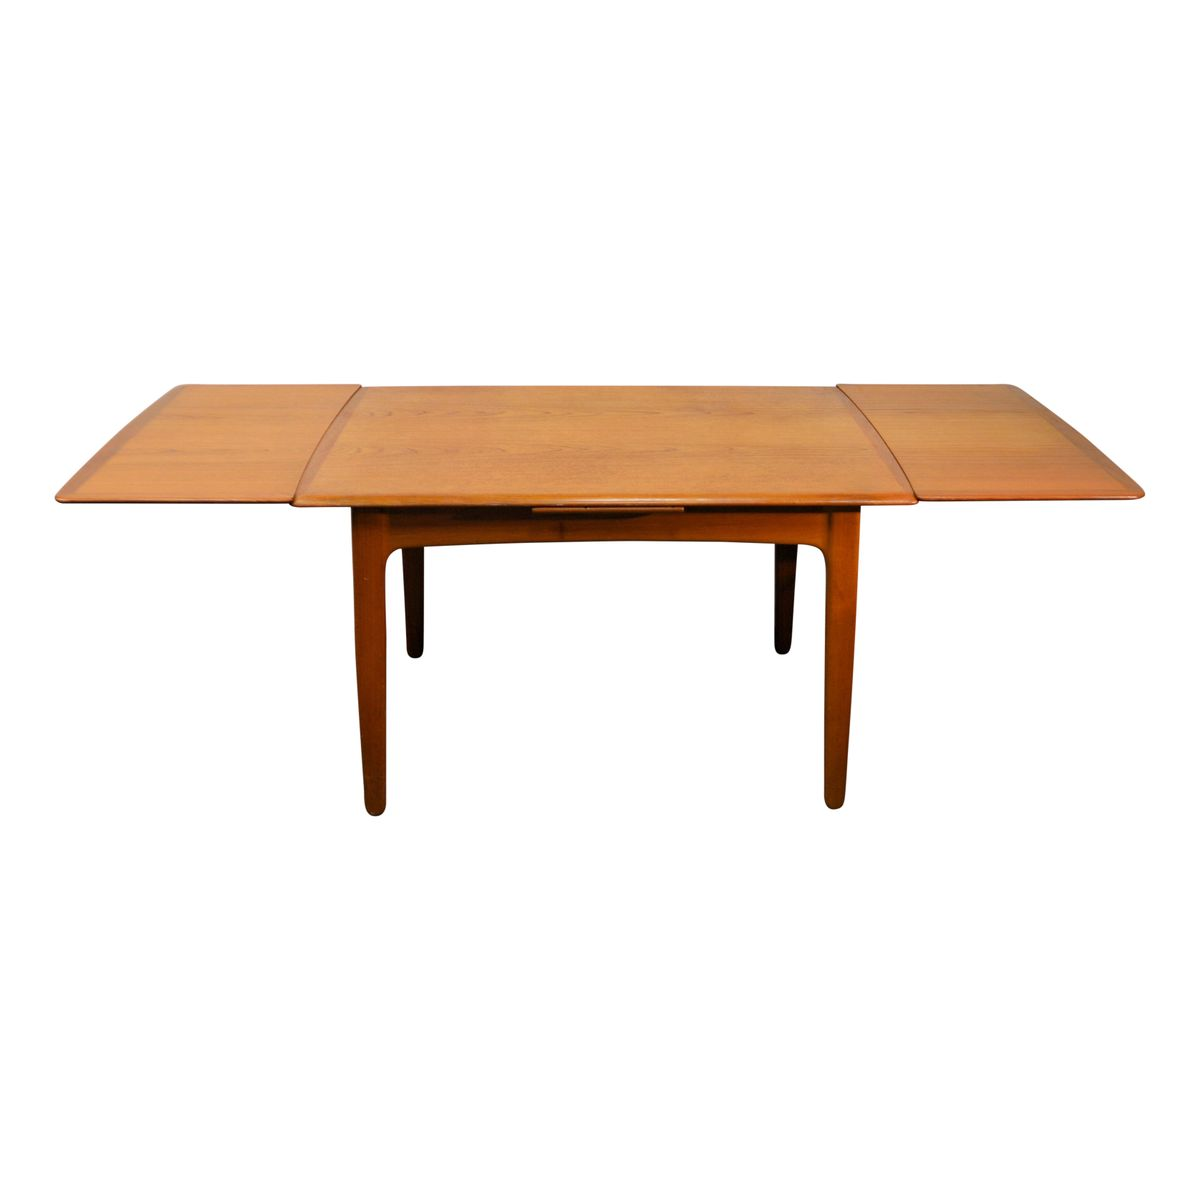 Extendable Teak Dining Table by Svend Aage Madsen for K  : extendable teak dining table by svend aage madsen for k knudsen son 1960s 9 from www.pamono.com size 1200 x 1200 jpeg 27kB